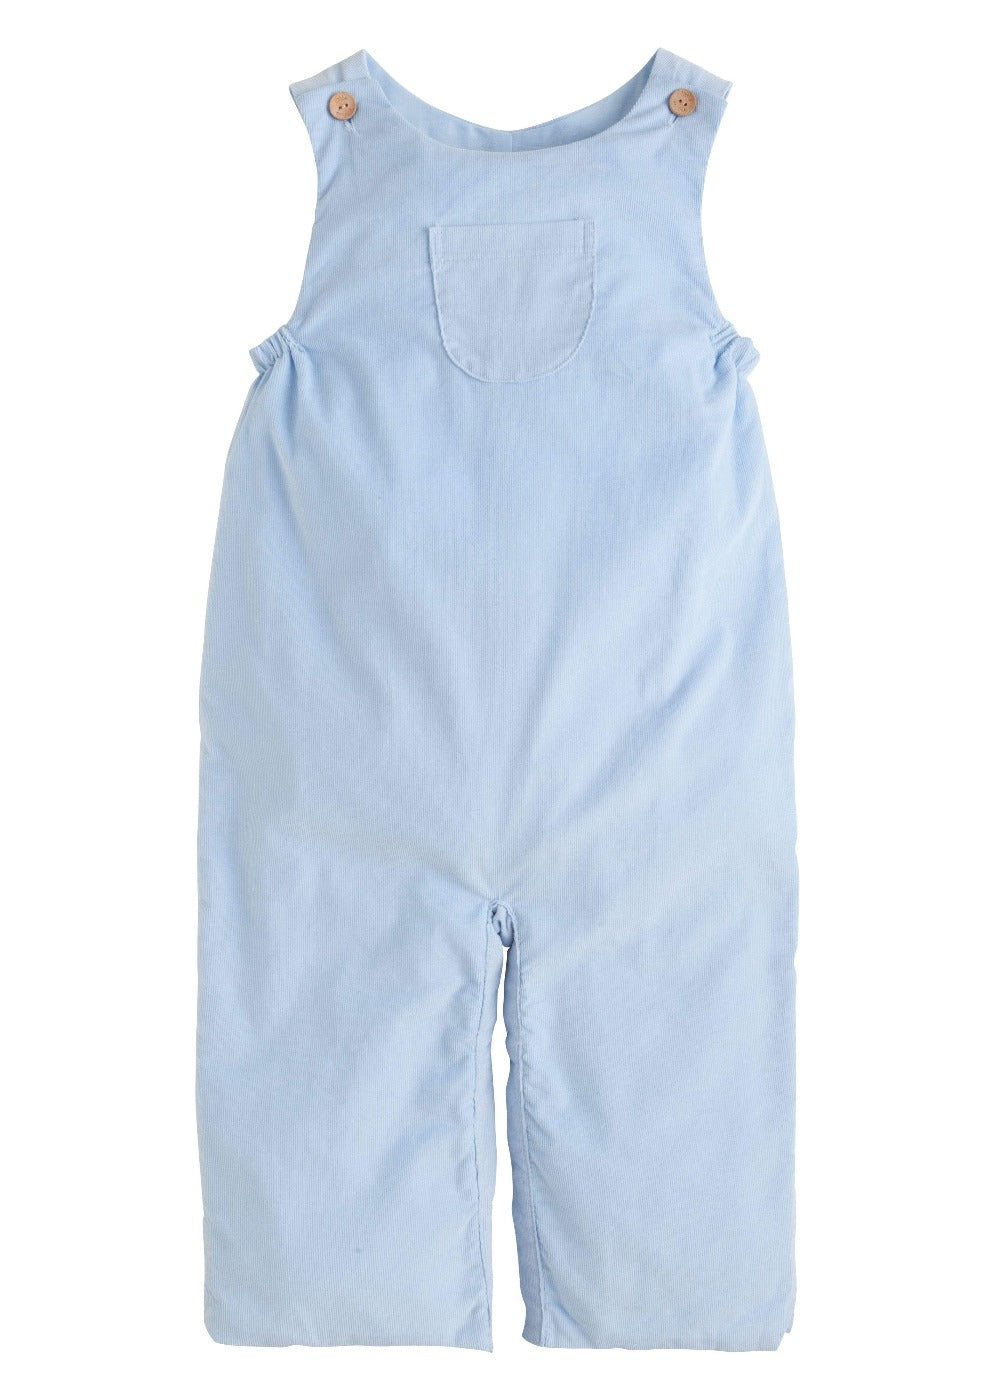 Campbell Overall - Light Blue, Little English, classic children's clothing, preppy children's clothing, traditional children's clothing, classic baby clothing, traditional baby clothing